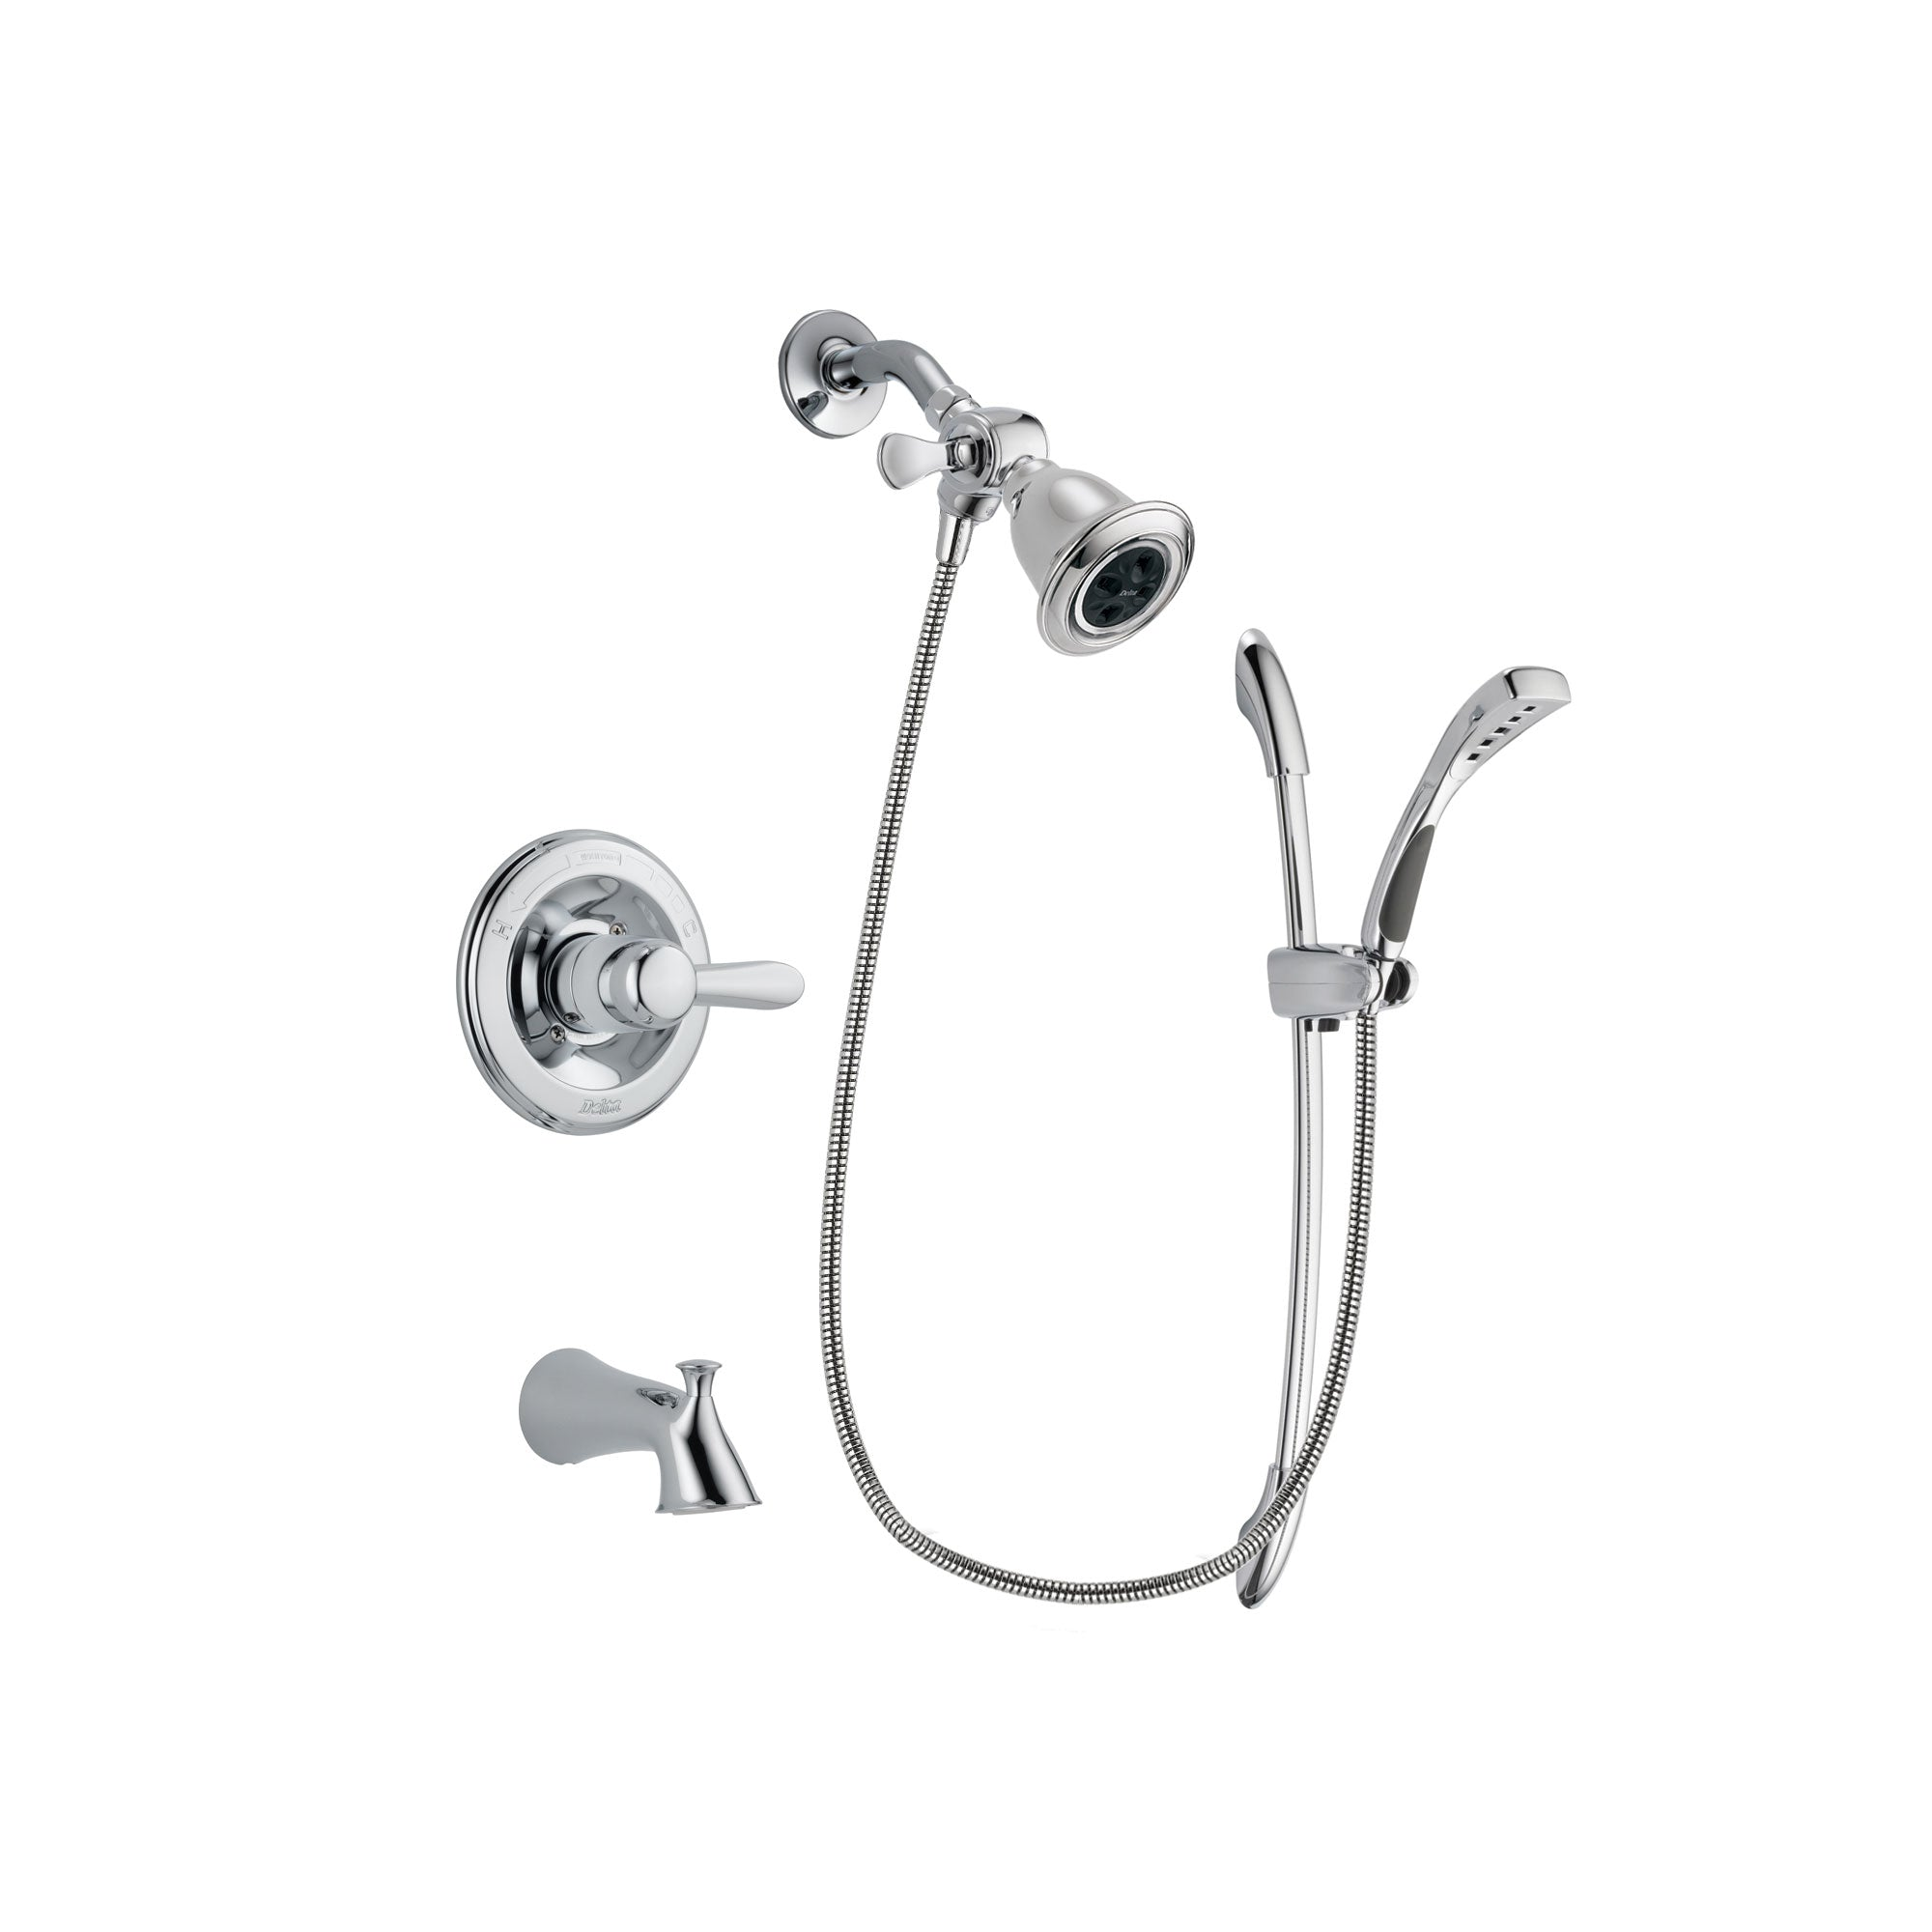 Delta Lahara Chrome Finish Tub and Shower Faucet System Package with Water Efficient Showerhead and Handheld Shower with Slide Bar Includes Rough-in Valve and Tub Spout DSP0469V